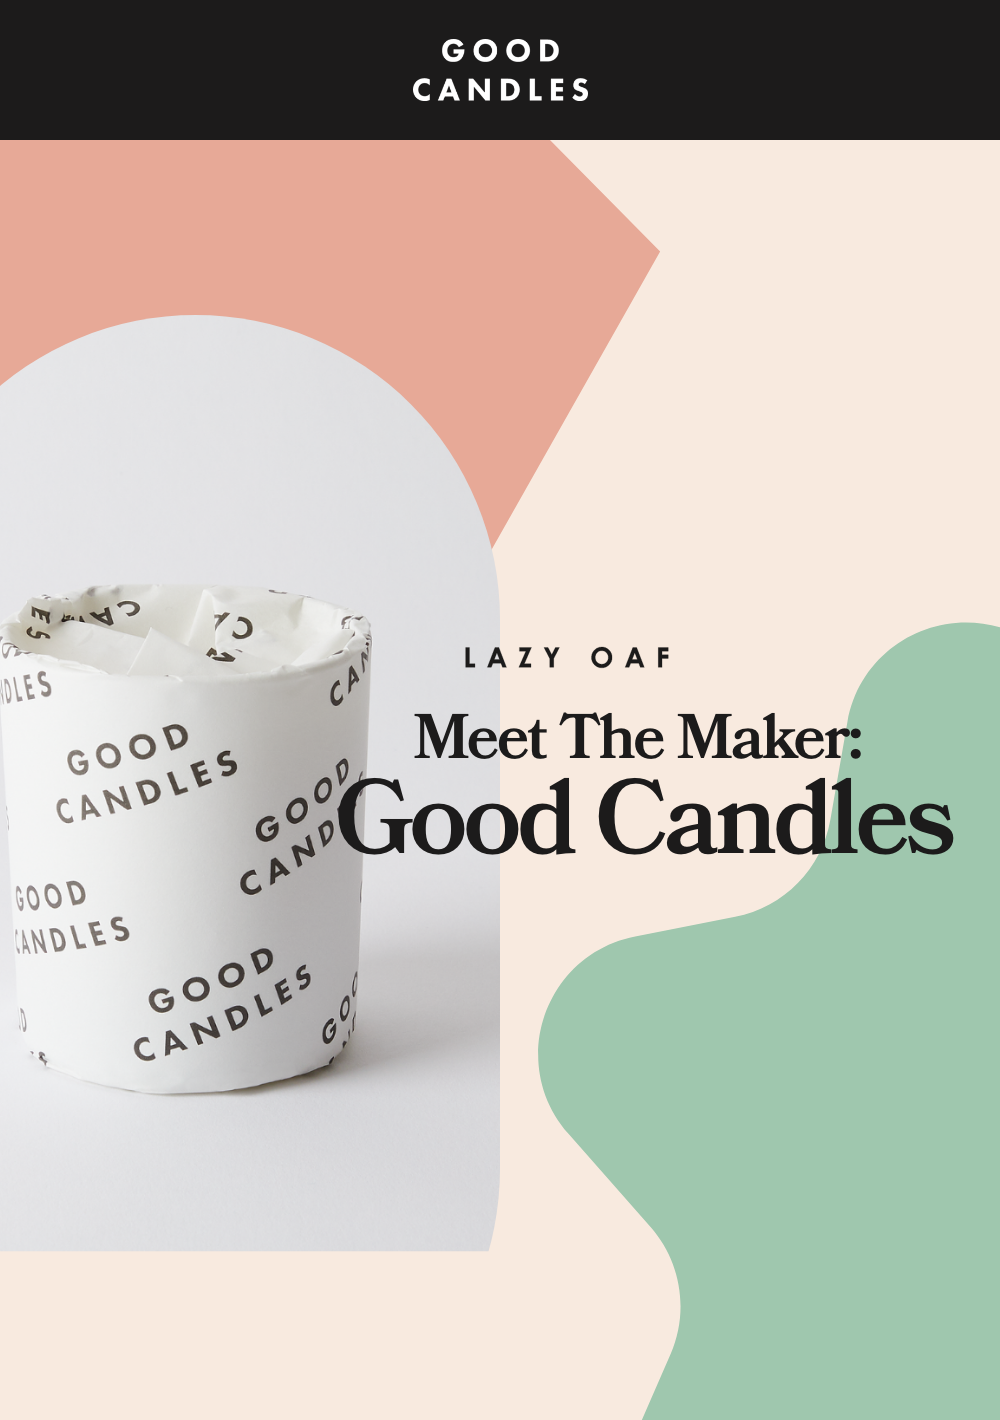 Meet The Maker: Olly From Good Candles Q & A